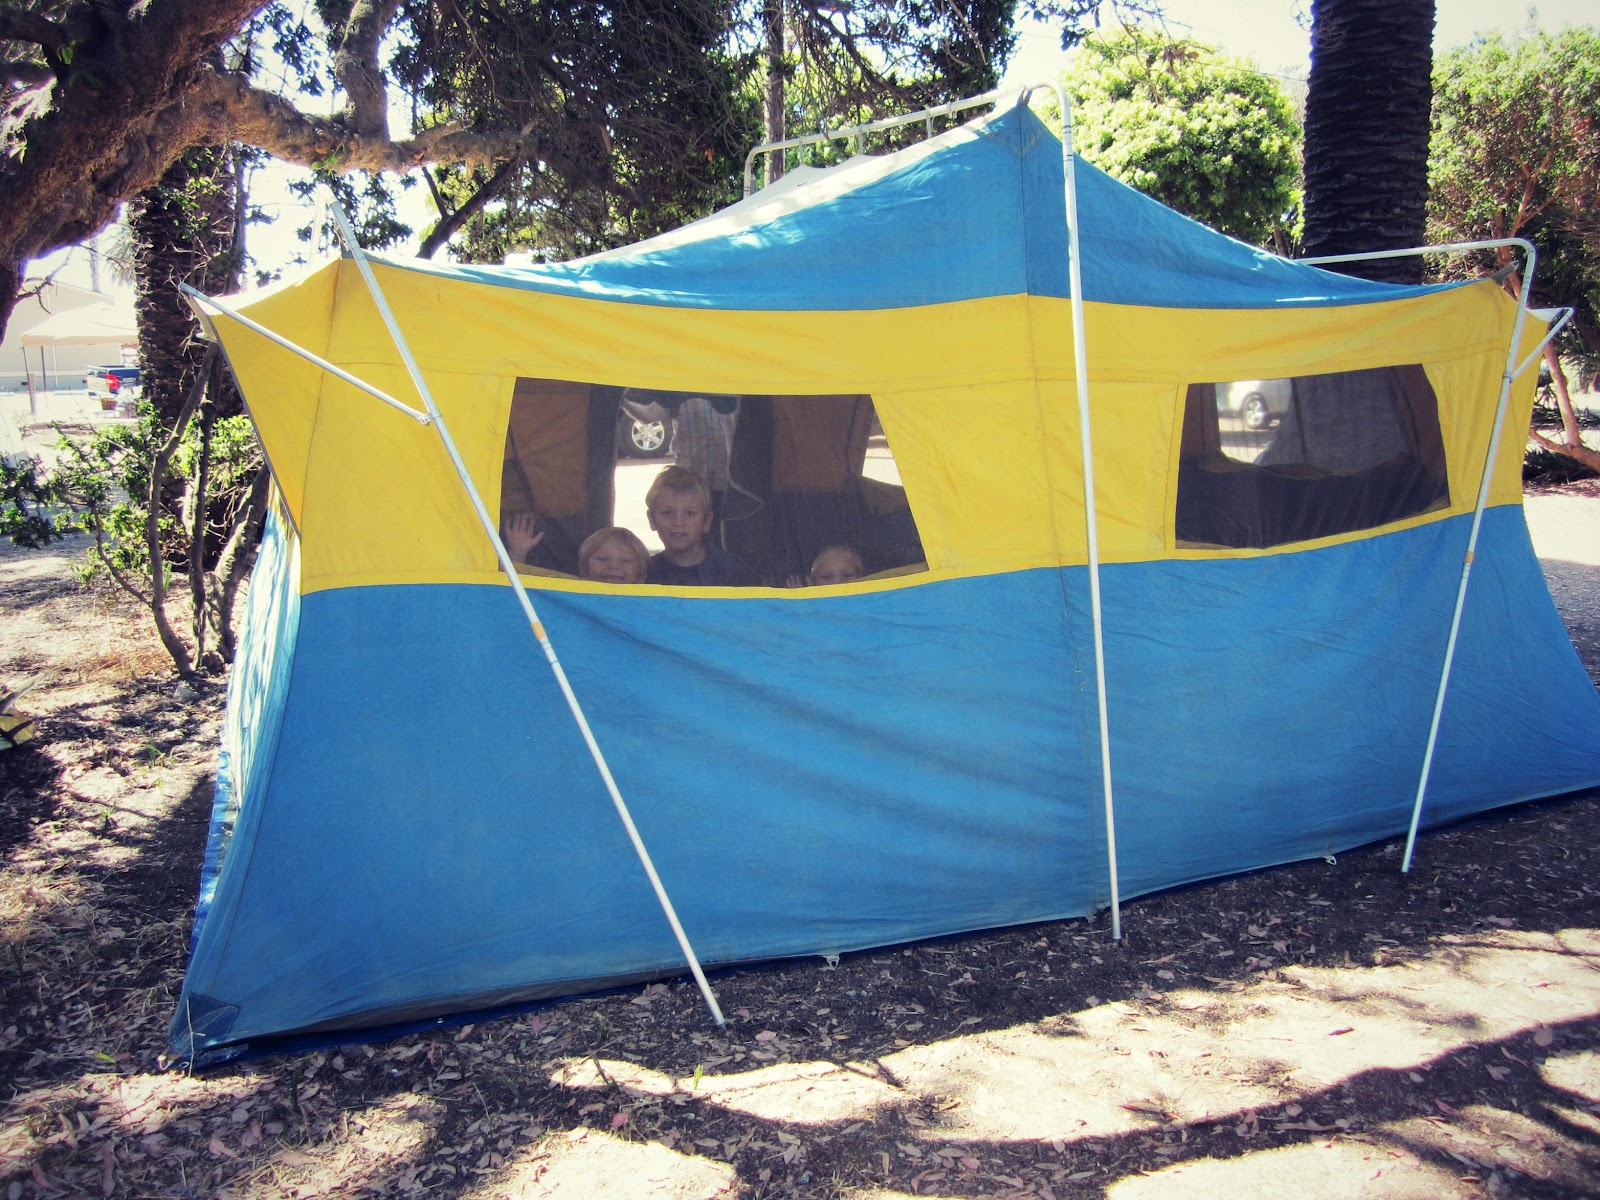 The kids raced inside to check it out. & Picnics in the Park: Meet Our Vintage Canvas Tent